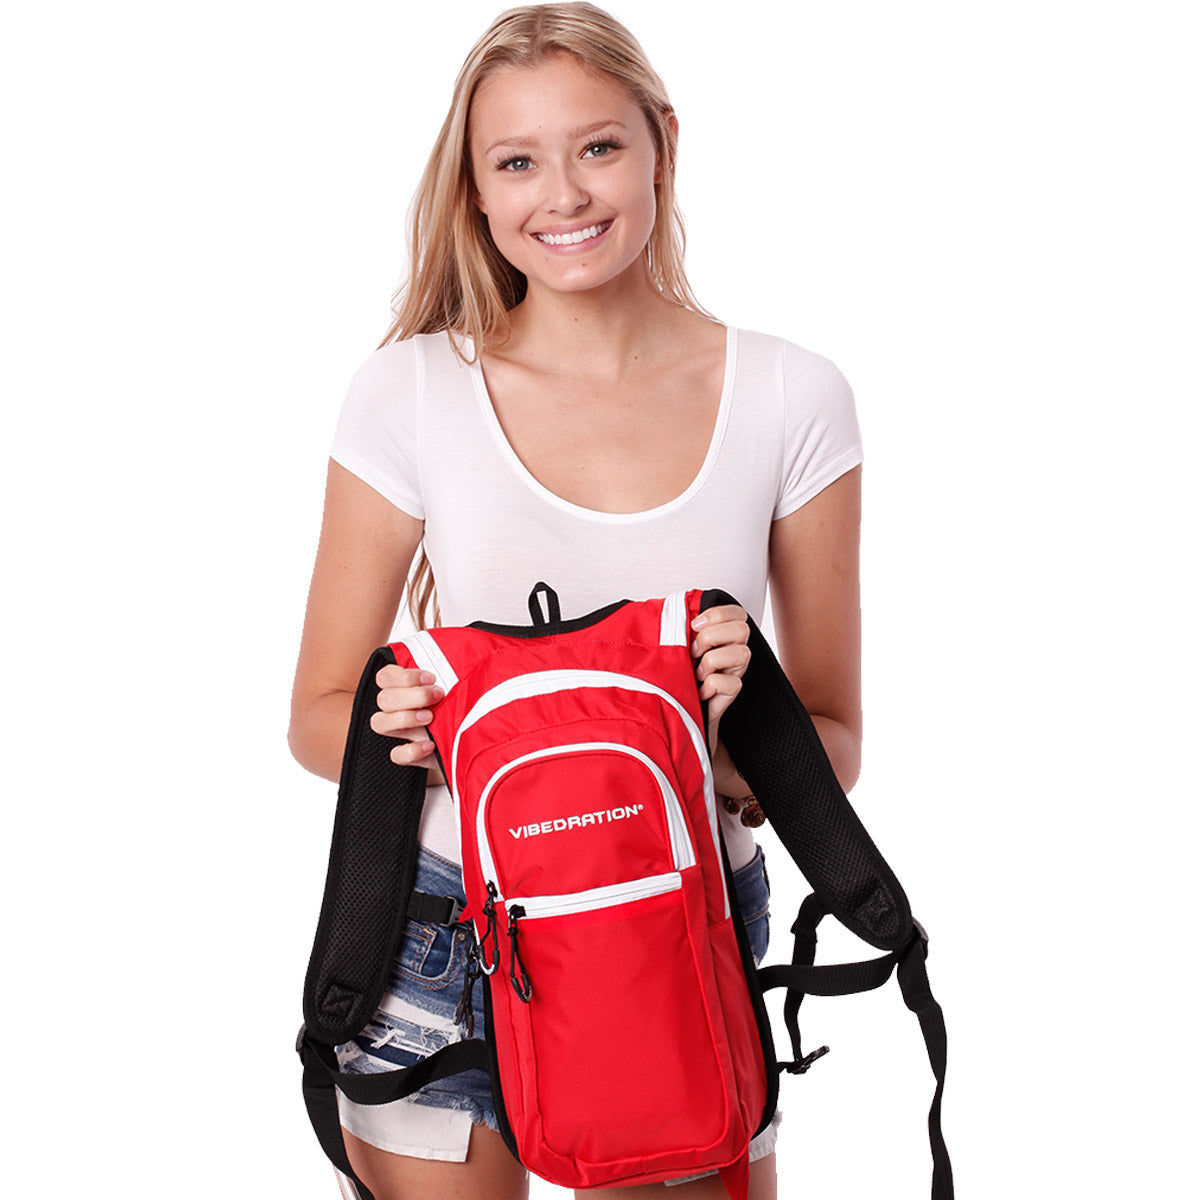 Female holding red and white hydration pack with three pockets.